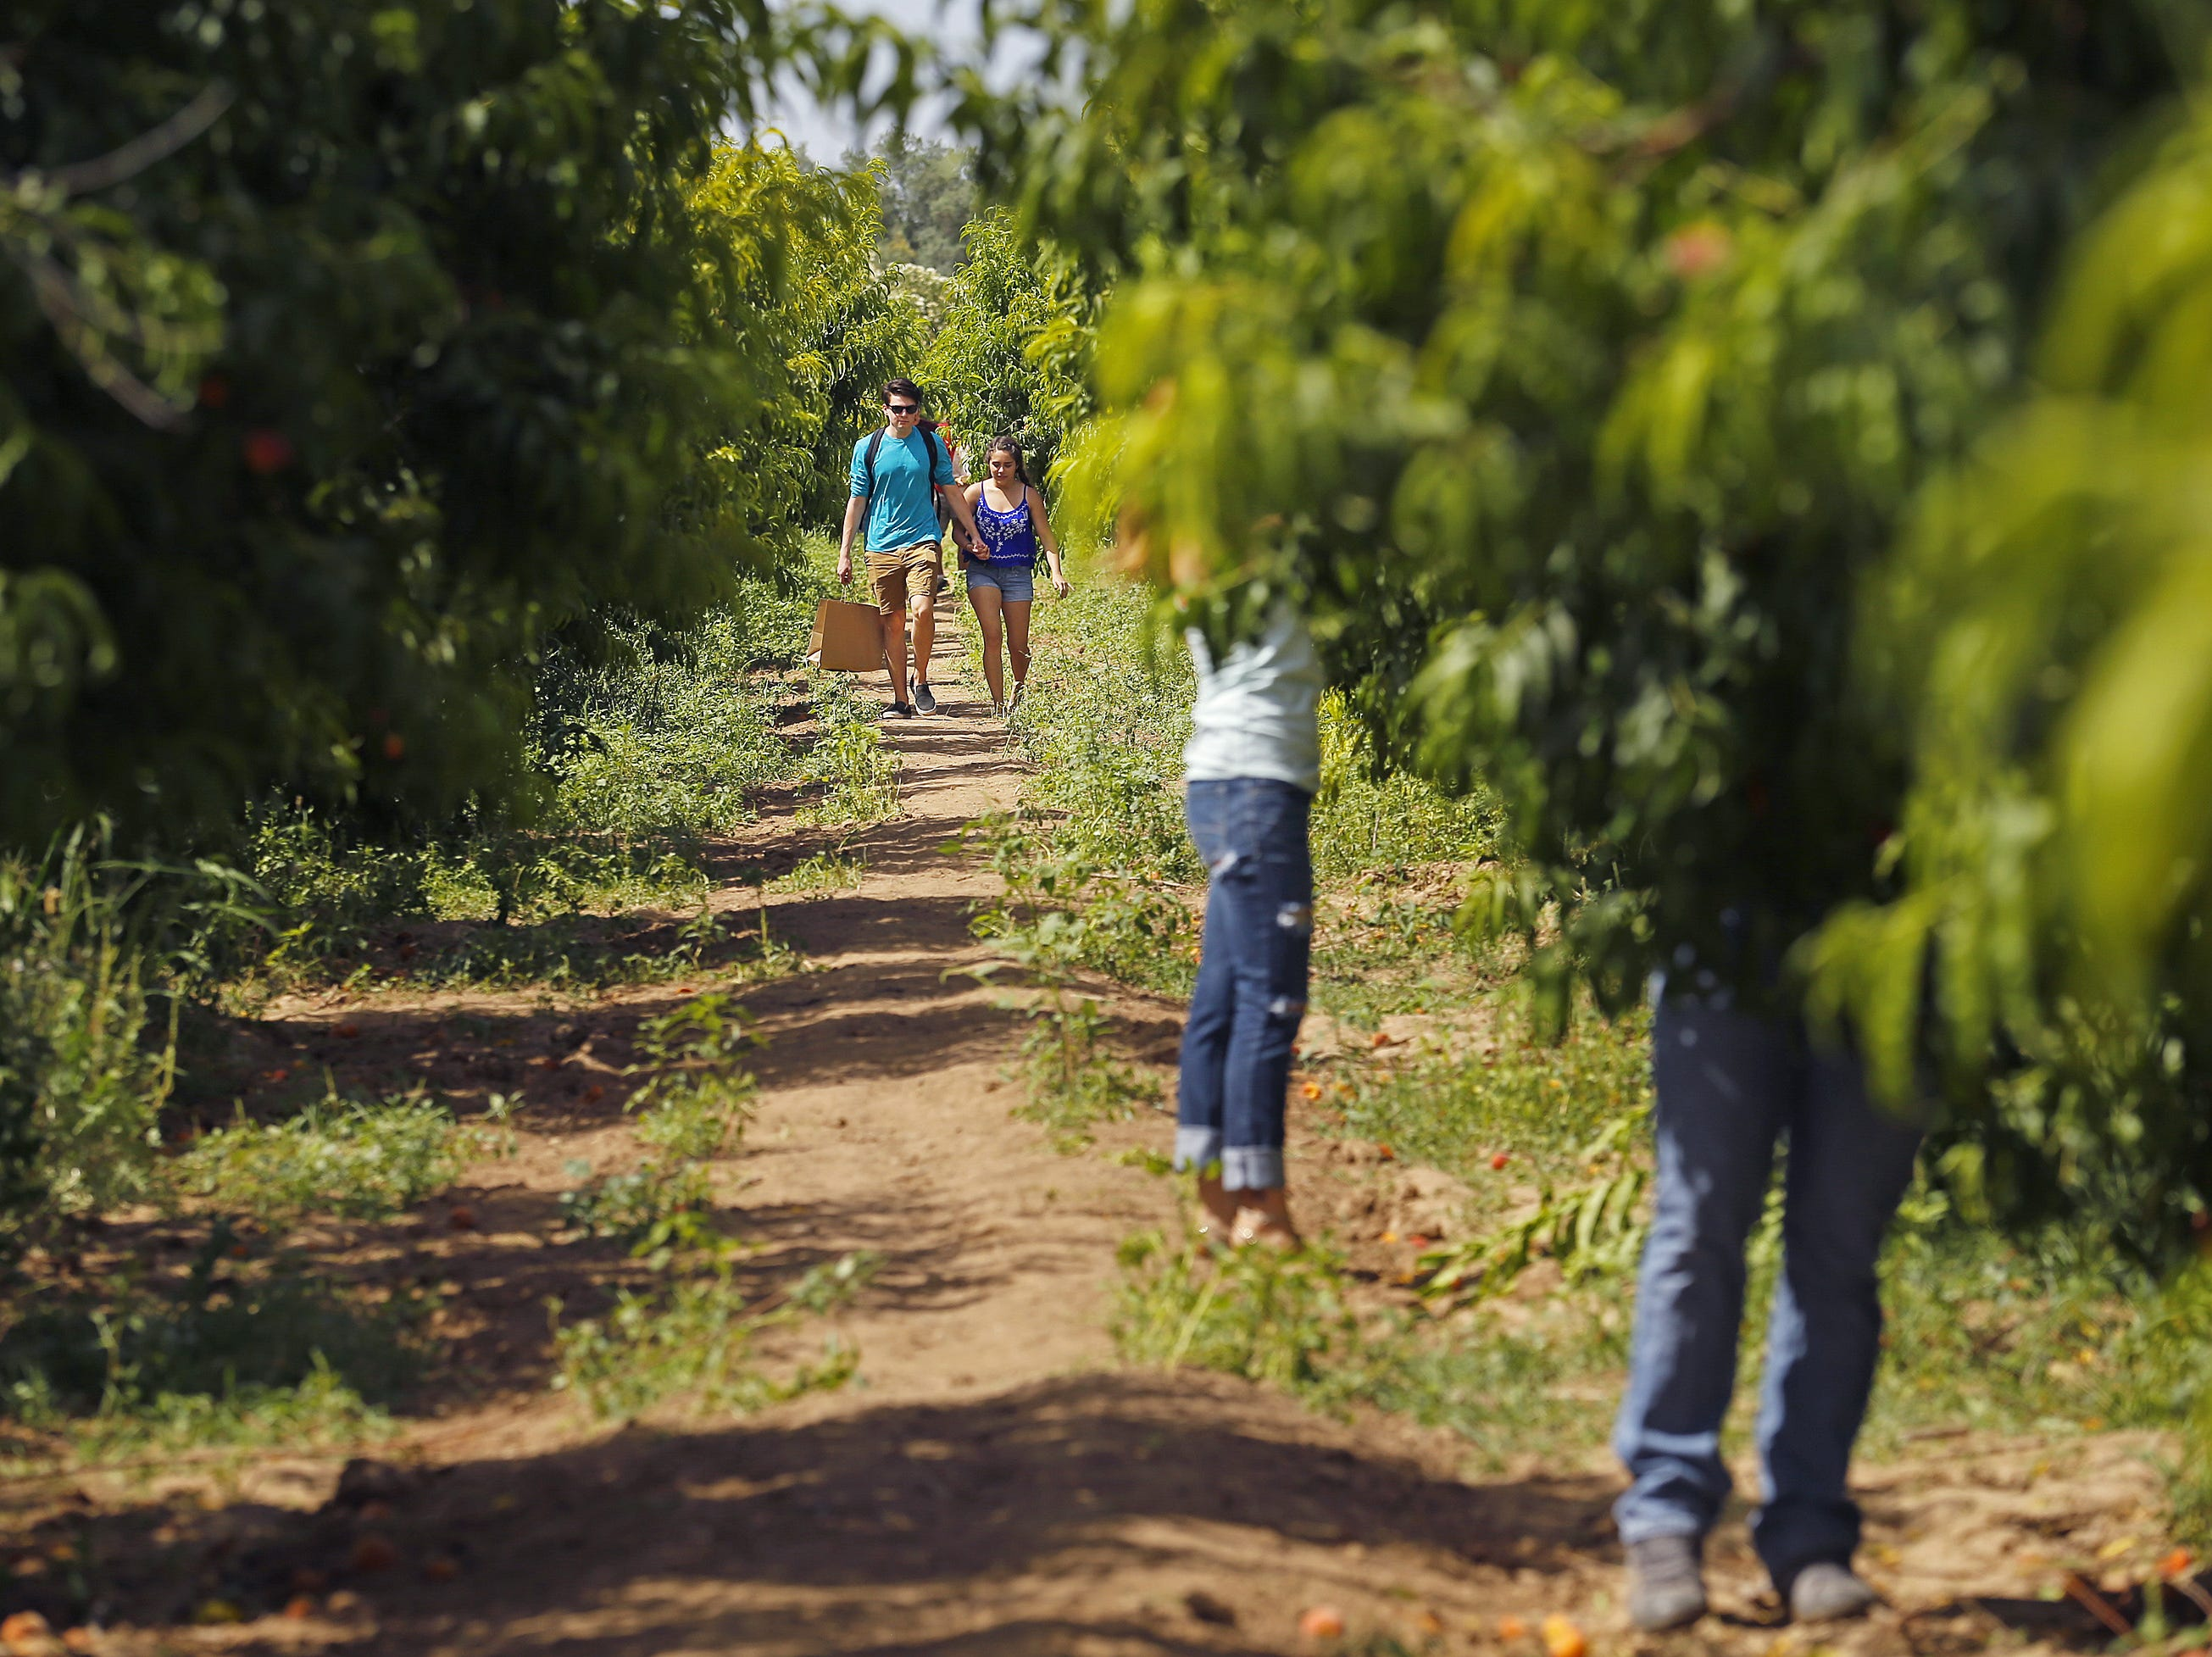 PICK PEACHES AT SCHNEPF FARMS: Schnepf Farms is expanding its peach picking festival over multiple weekends, allowing visitors to pick the ripe fruit over about six weeks from April through May.